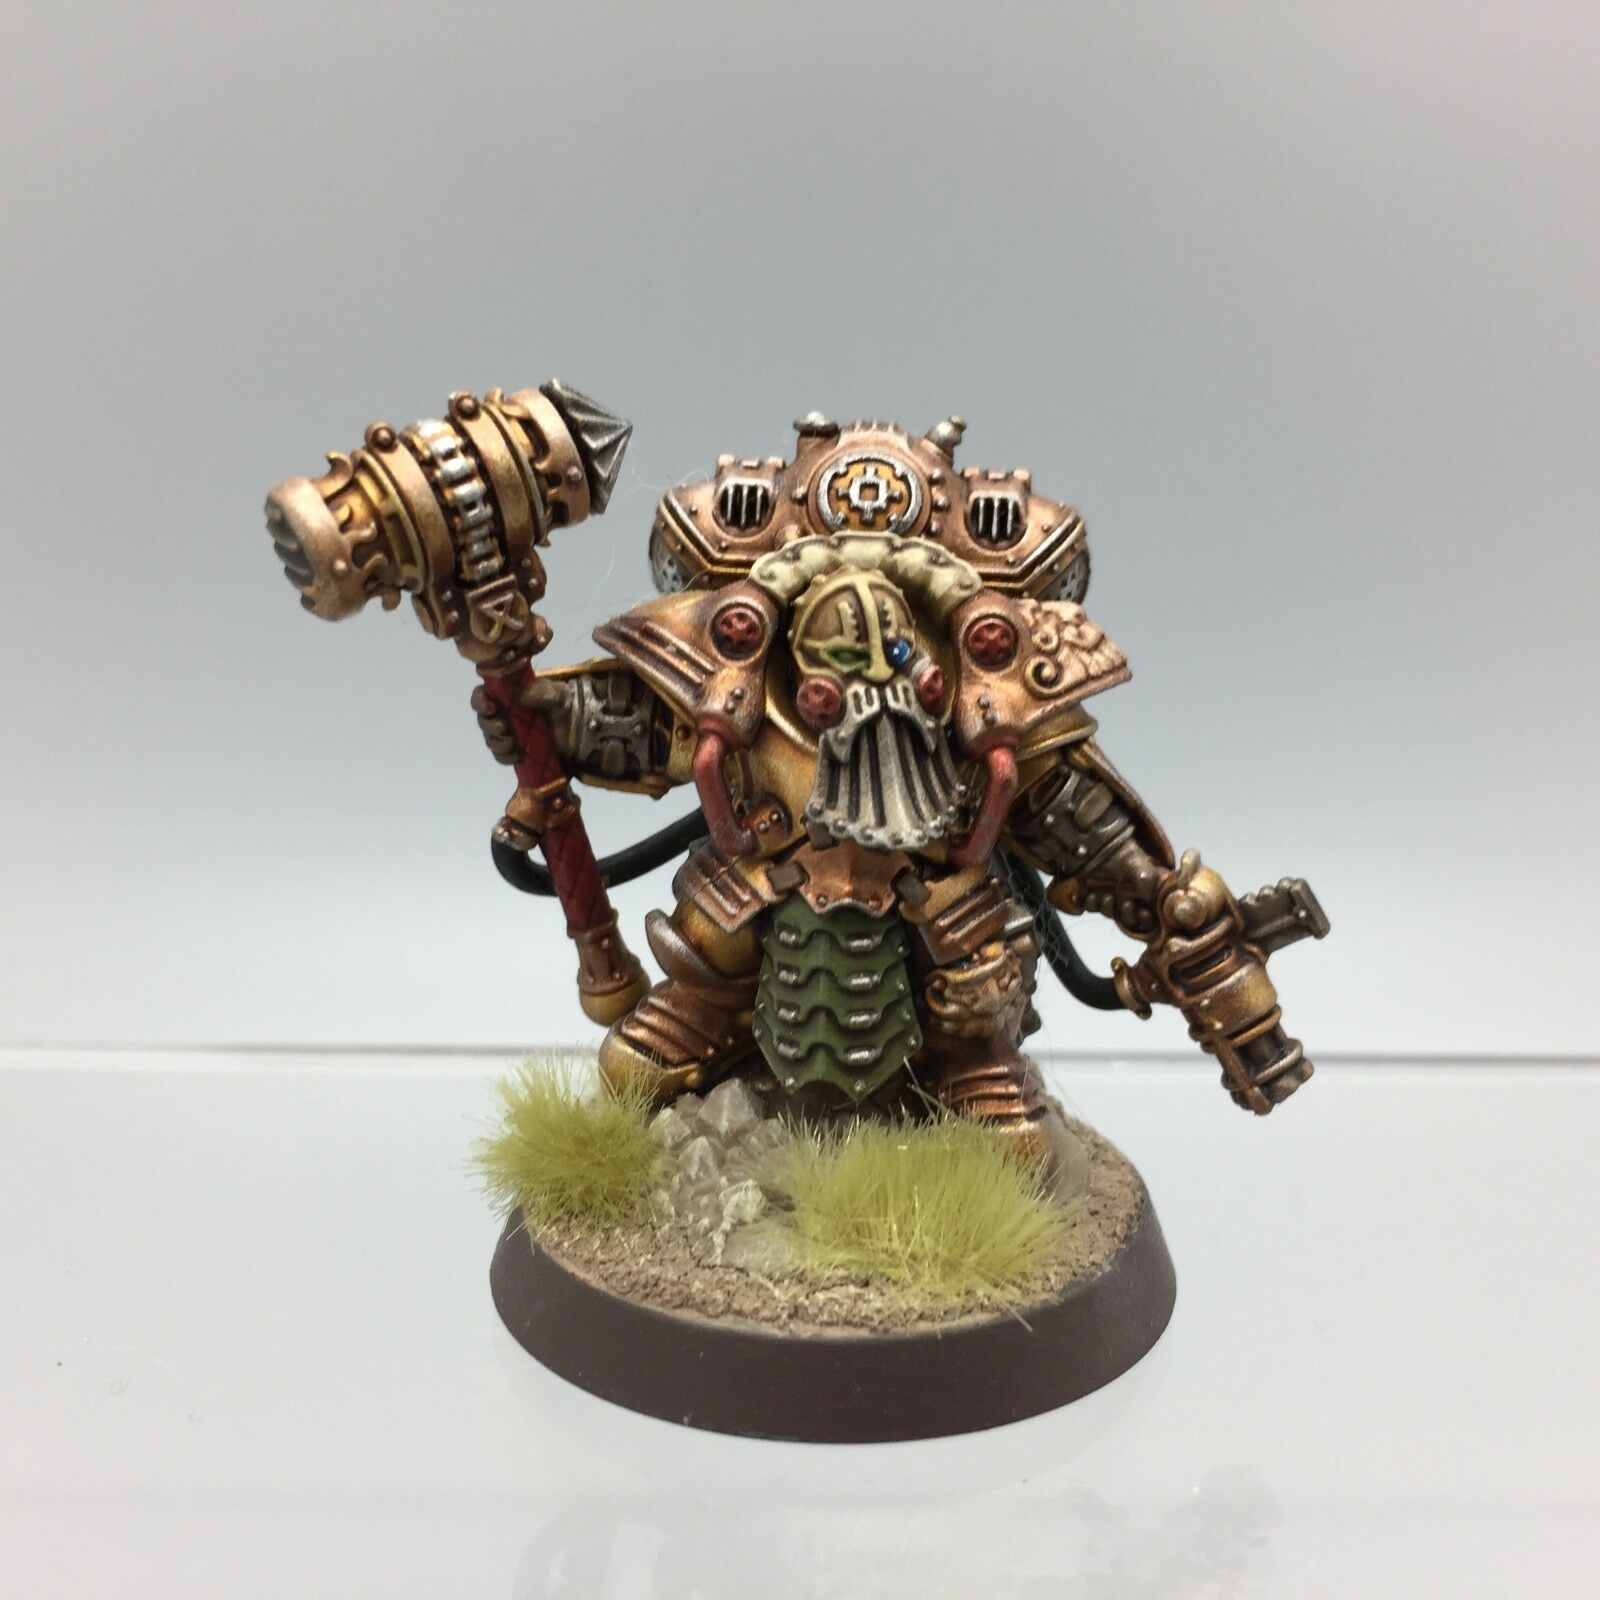 WARHAMMER AGE OF SIGMAR KHARADRON OVERLORDS ARKANAUT ADMIRAL PAINTED & BASED